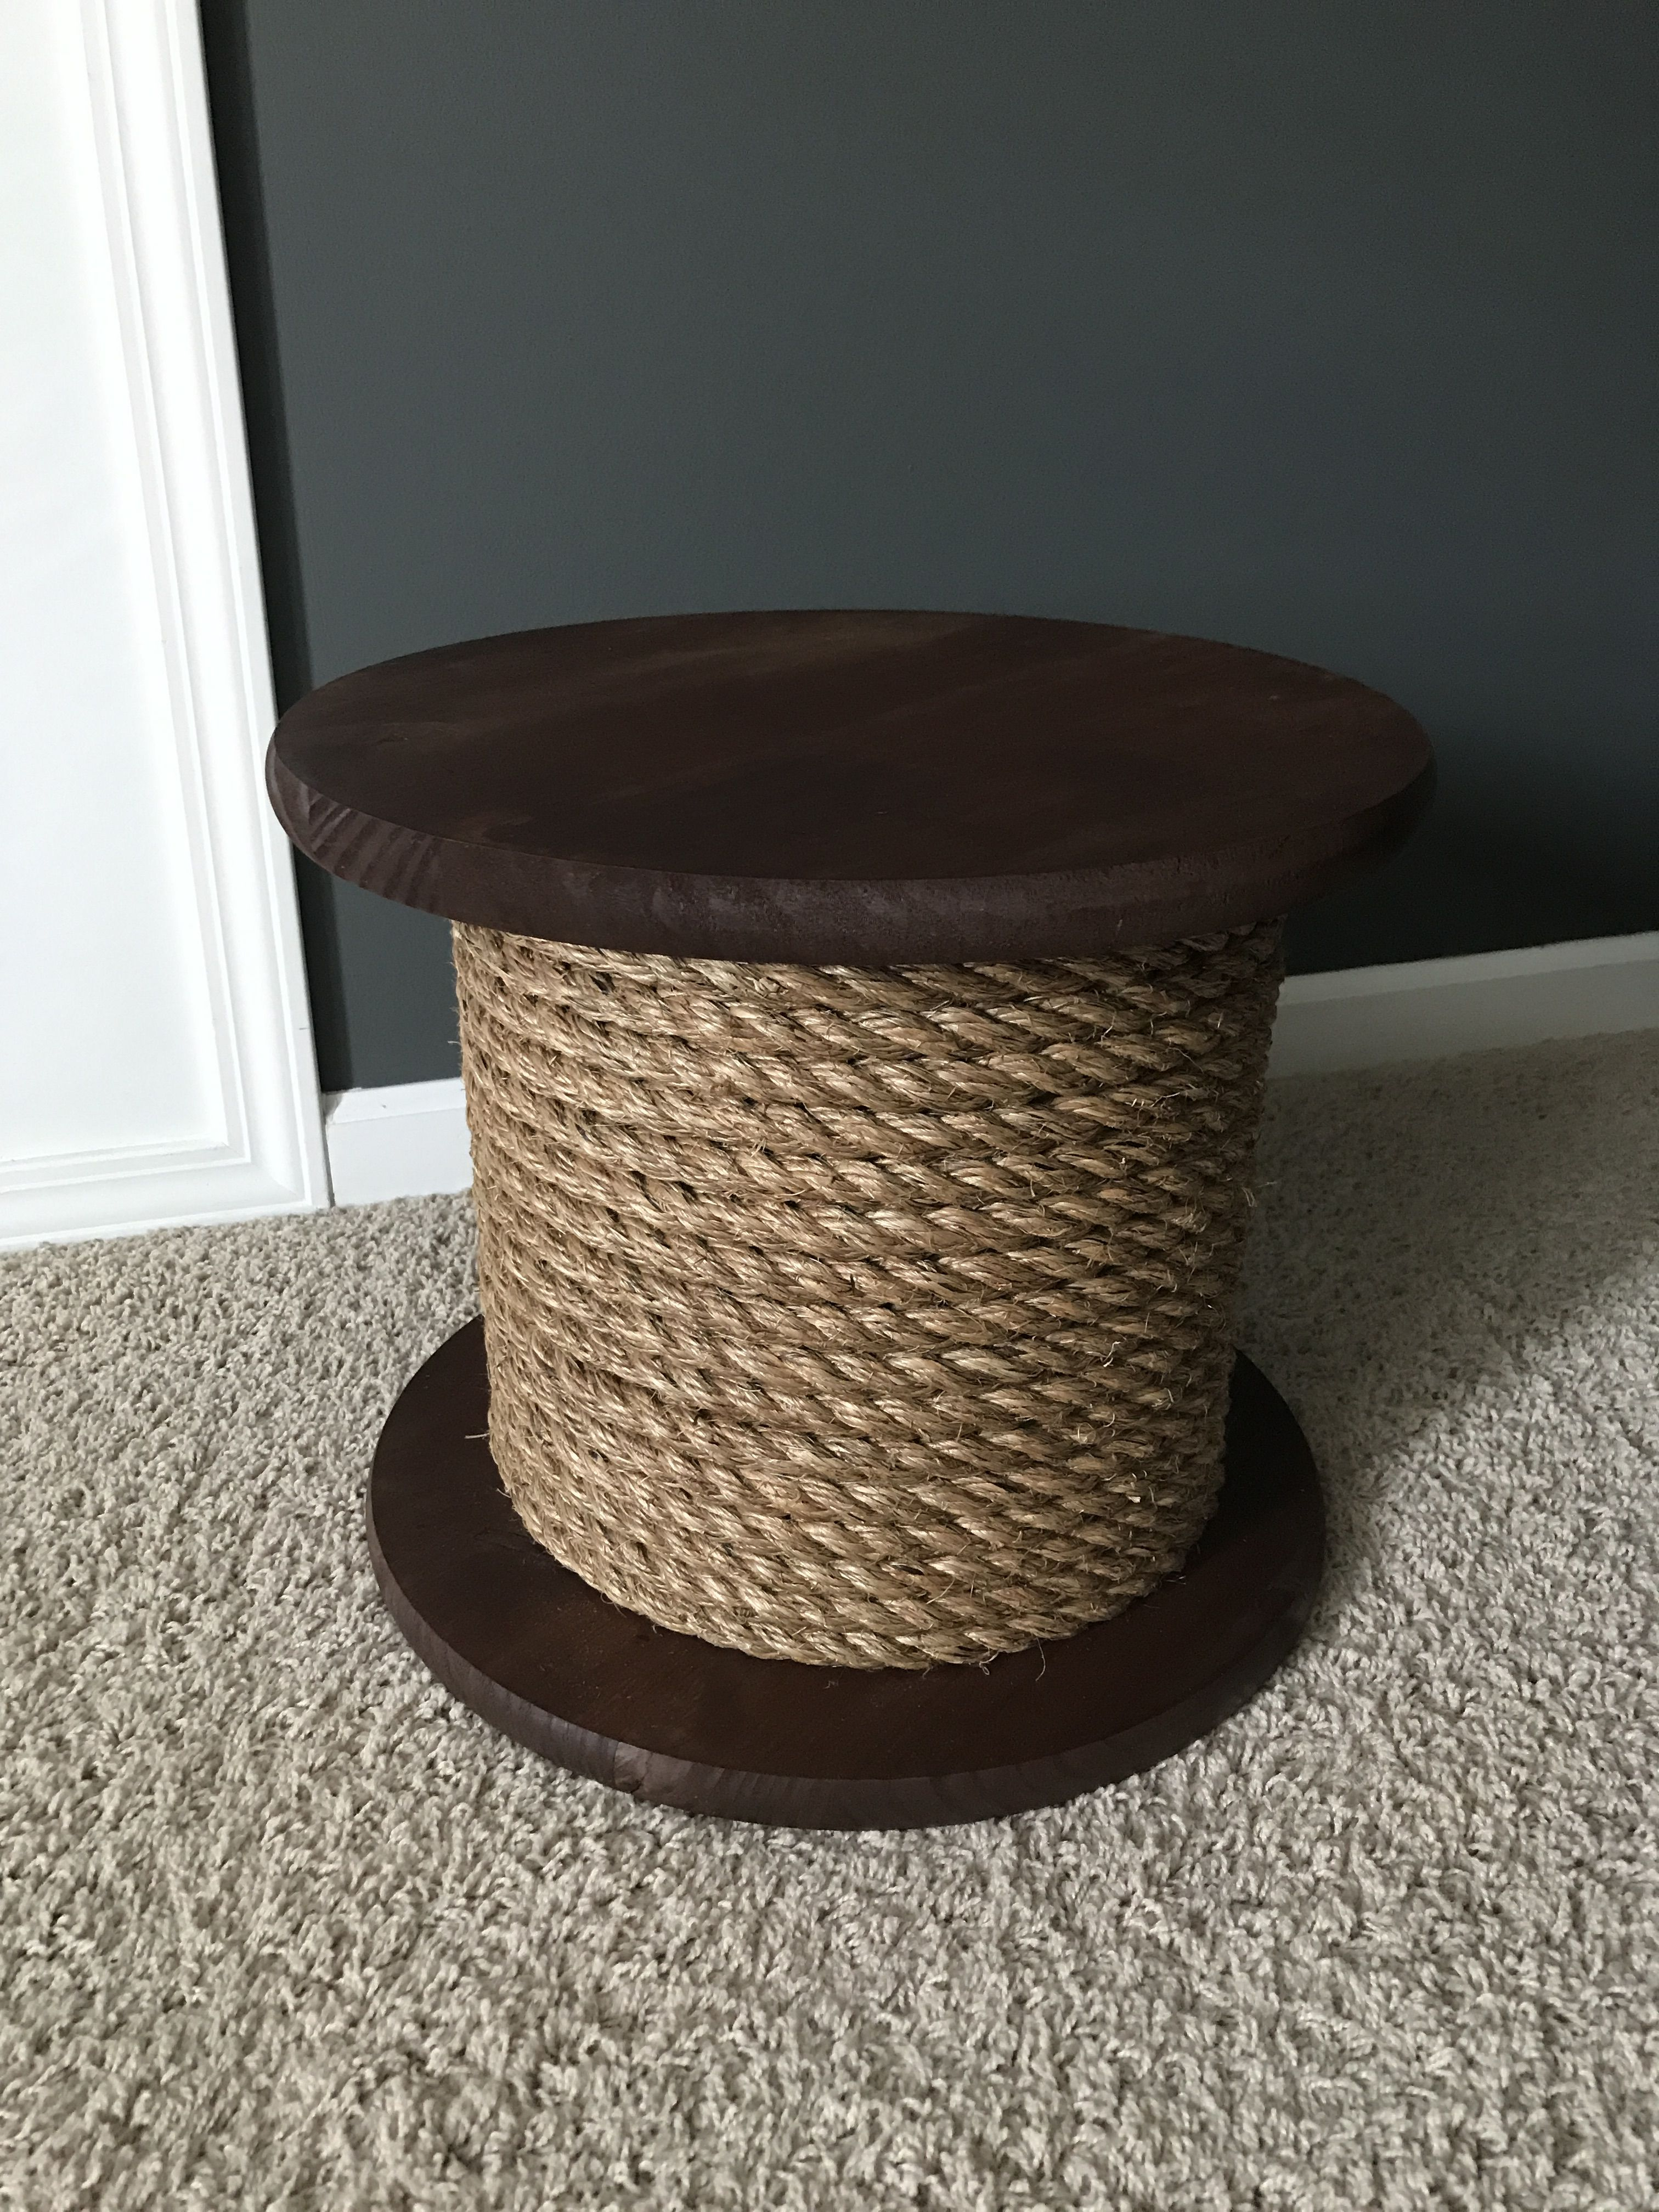 Stool made with Sonotube (Home Depot) | Garden stool | Pinterest ...